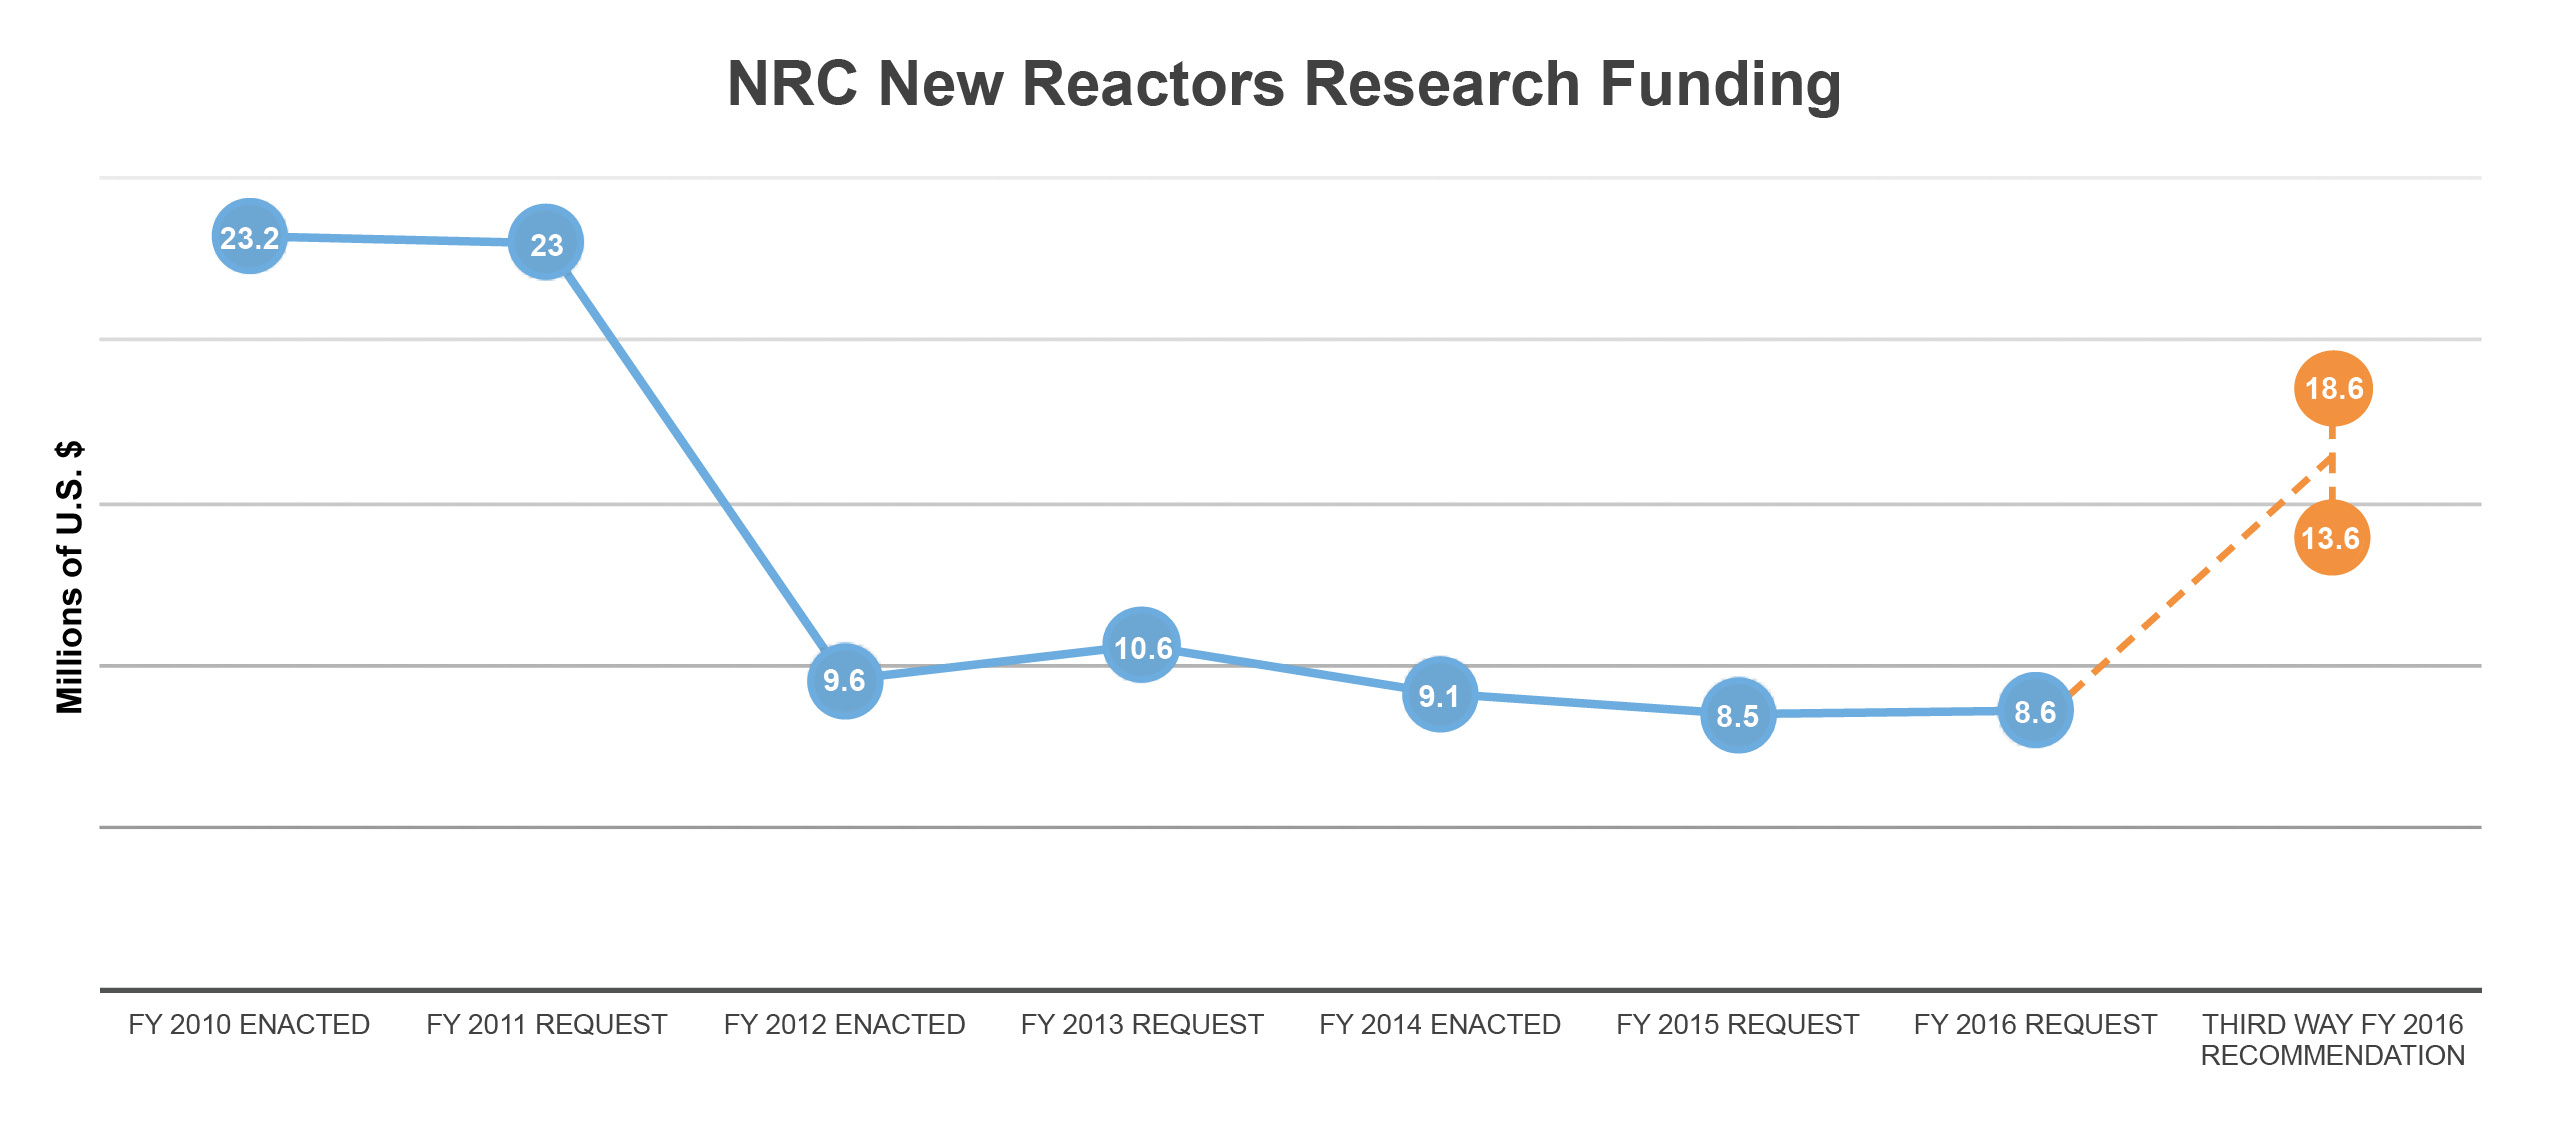 NRC New Reactors Research Funding